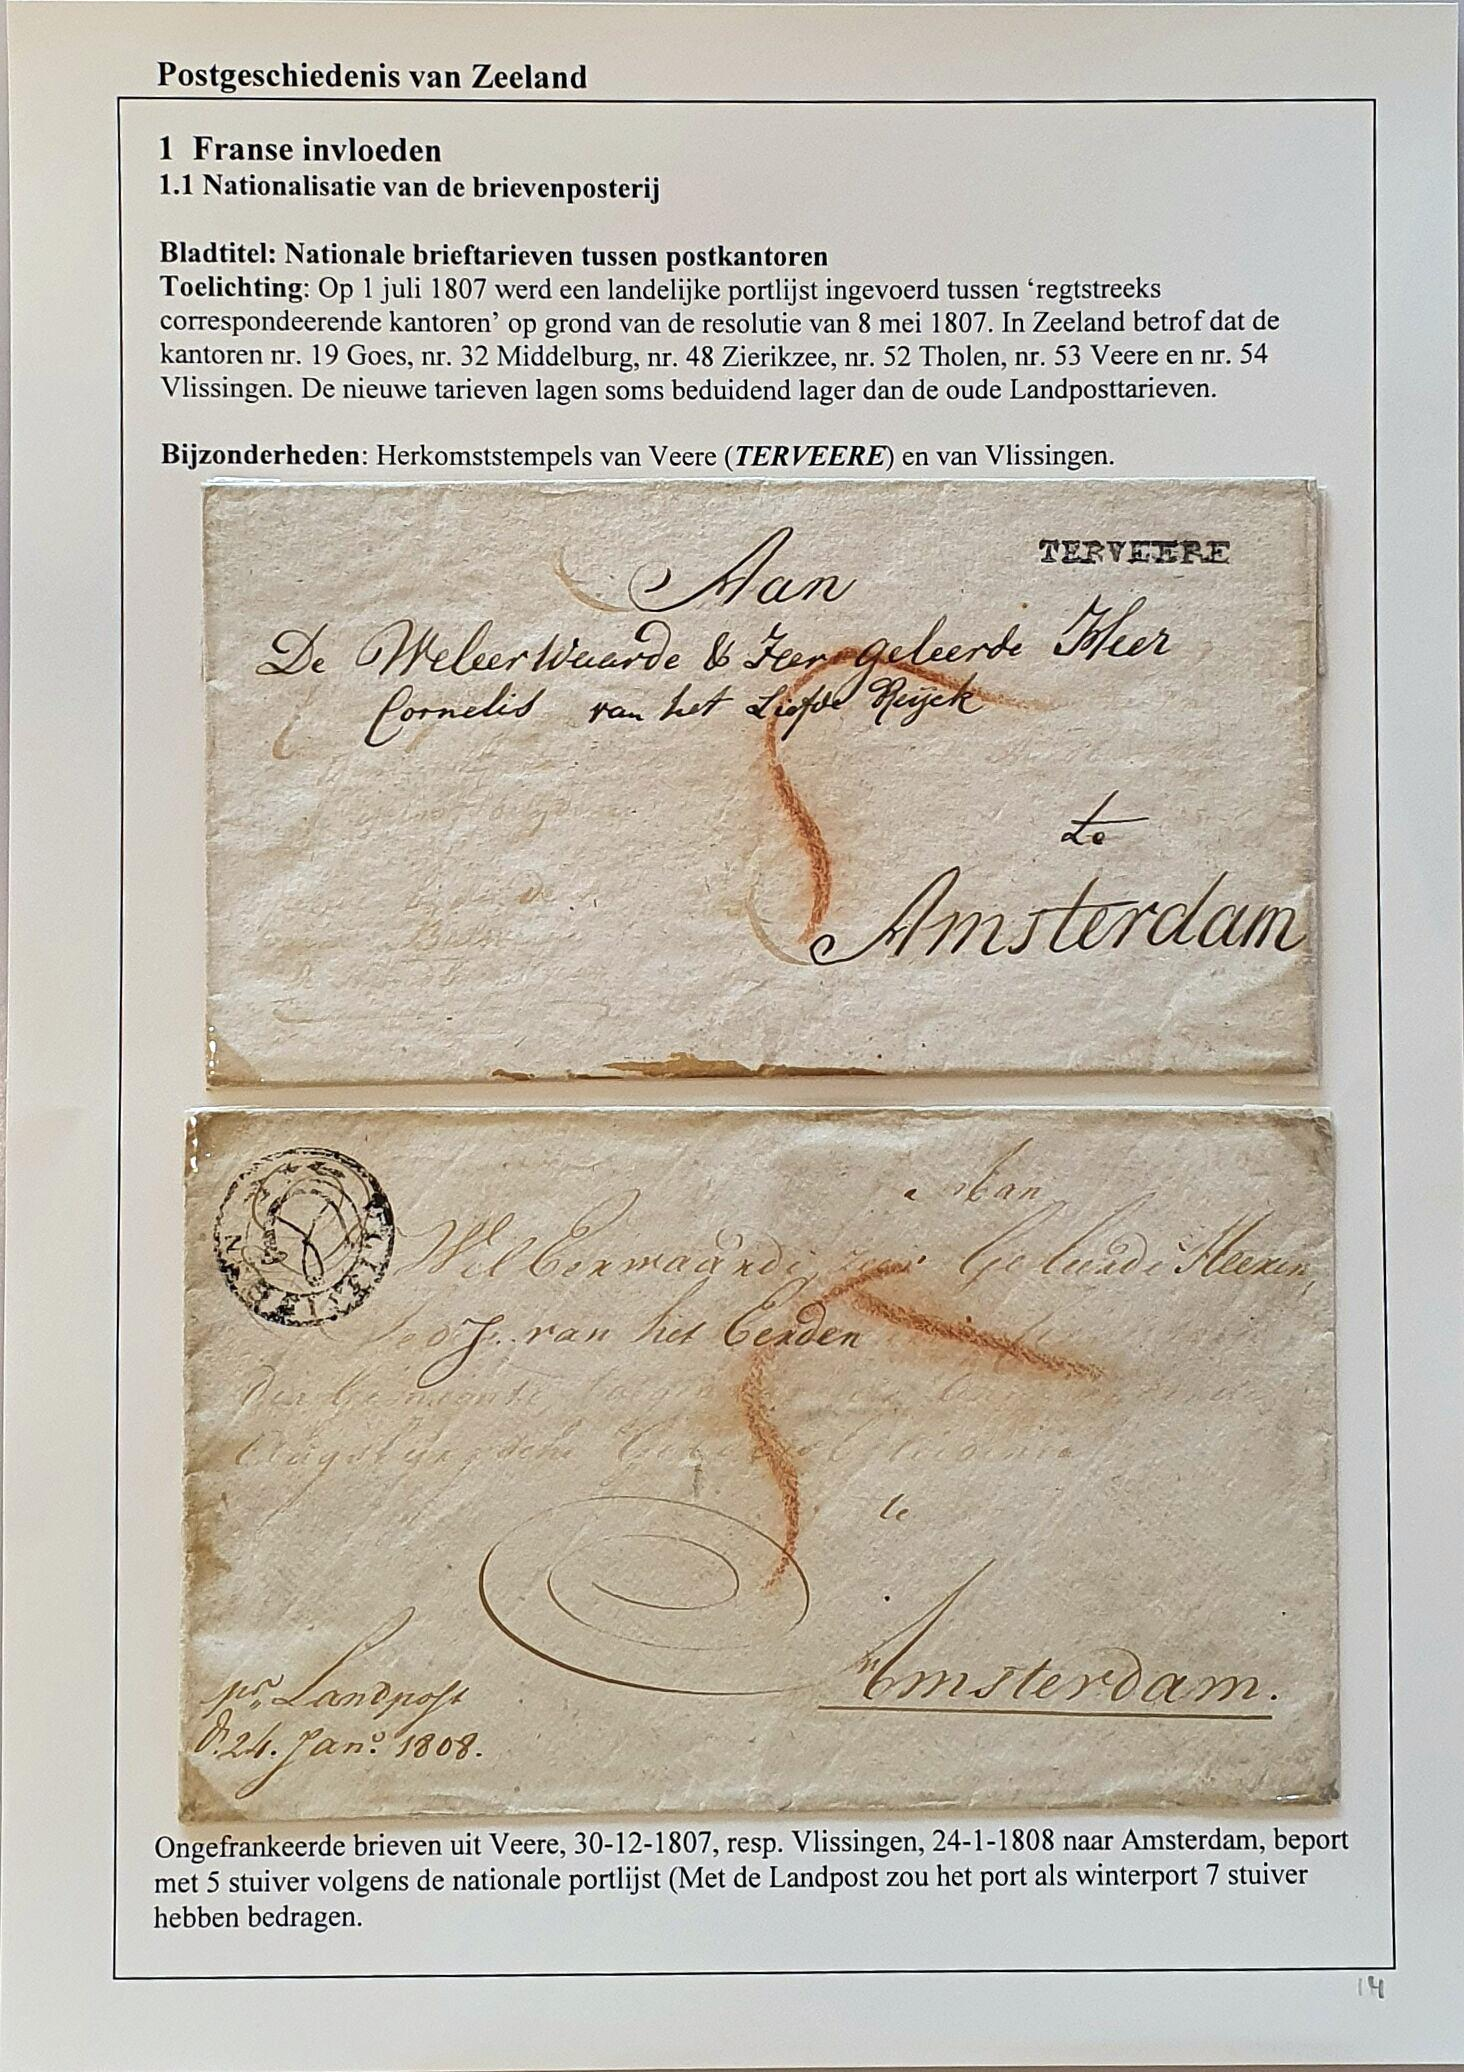 Lot 2320 - Netherlands and former colonies Netherlands -  Corinphila Veilingen Auction 250-253 - Day 3 - Netherlands and former colonies - Single lots & Picture postcards